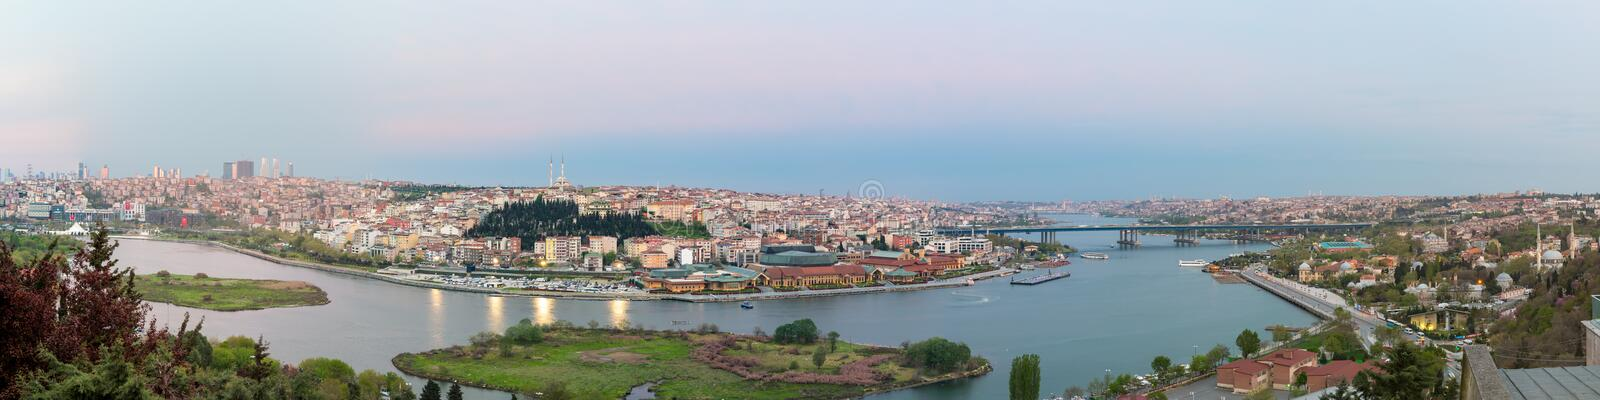 Istanbul city view from Pierre Loti Teleferik station at dusk time, Eyup District, Istanbul, Turkey stock image